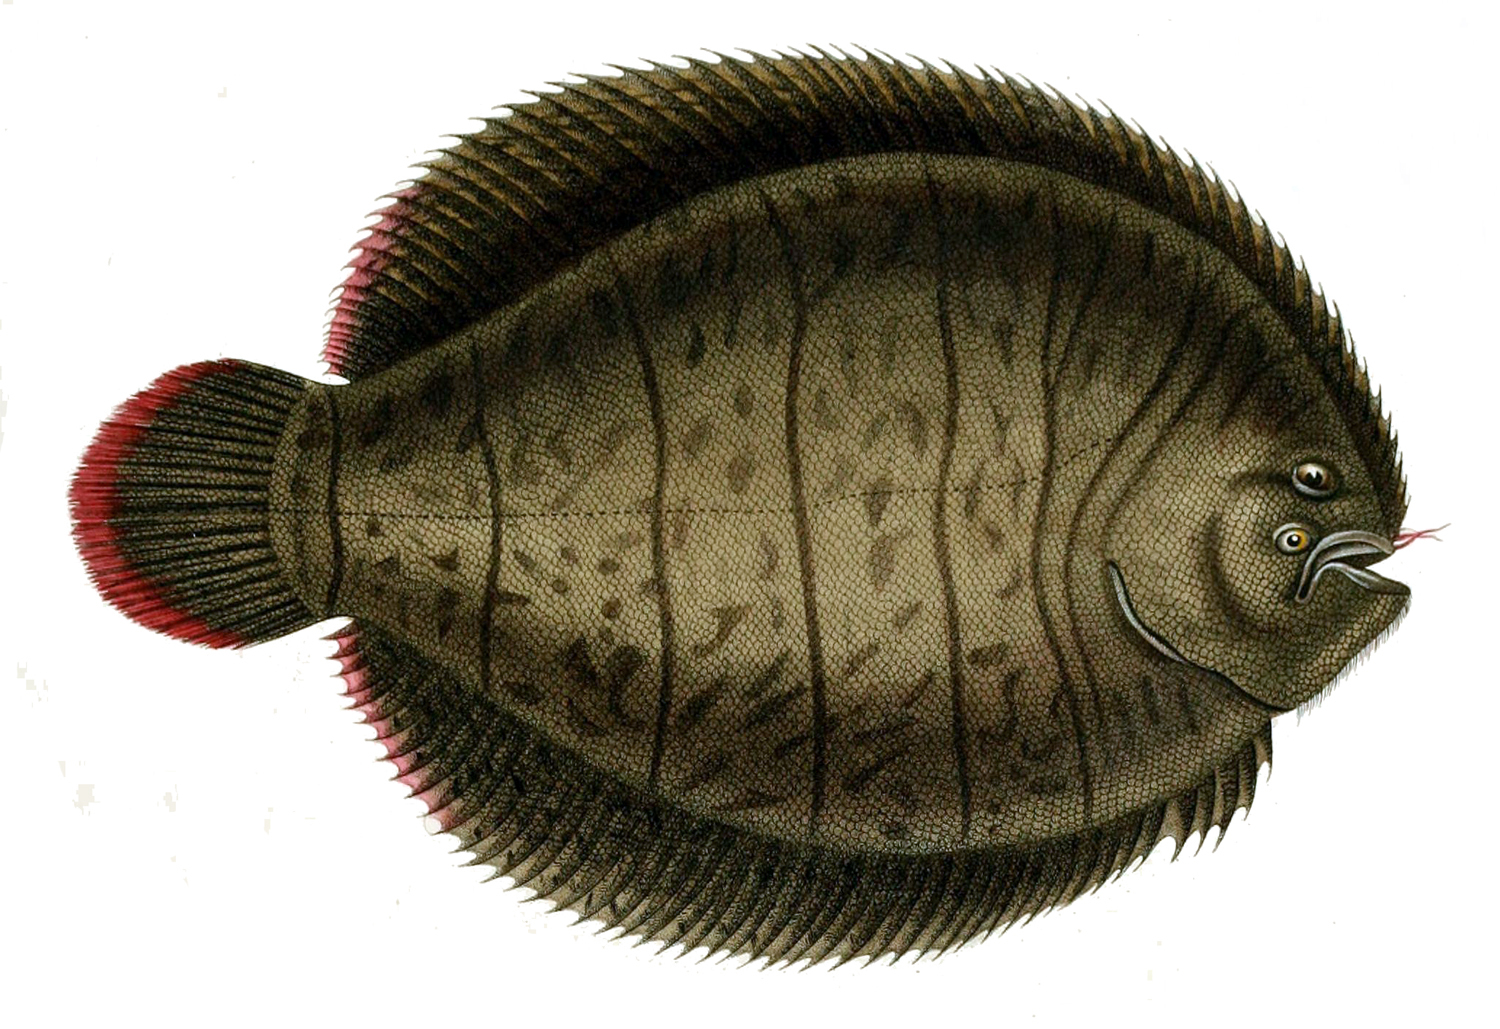 Image of Lined Sole